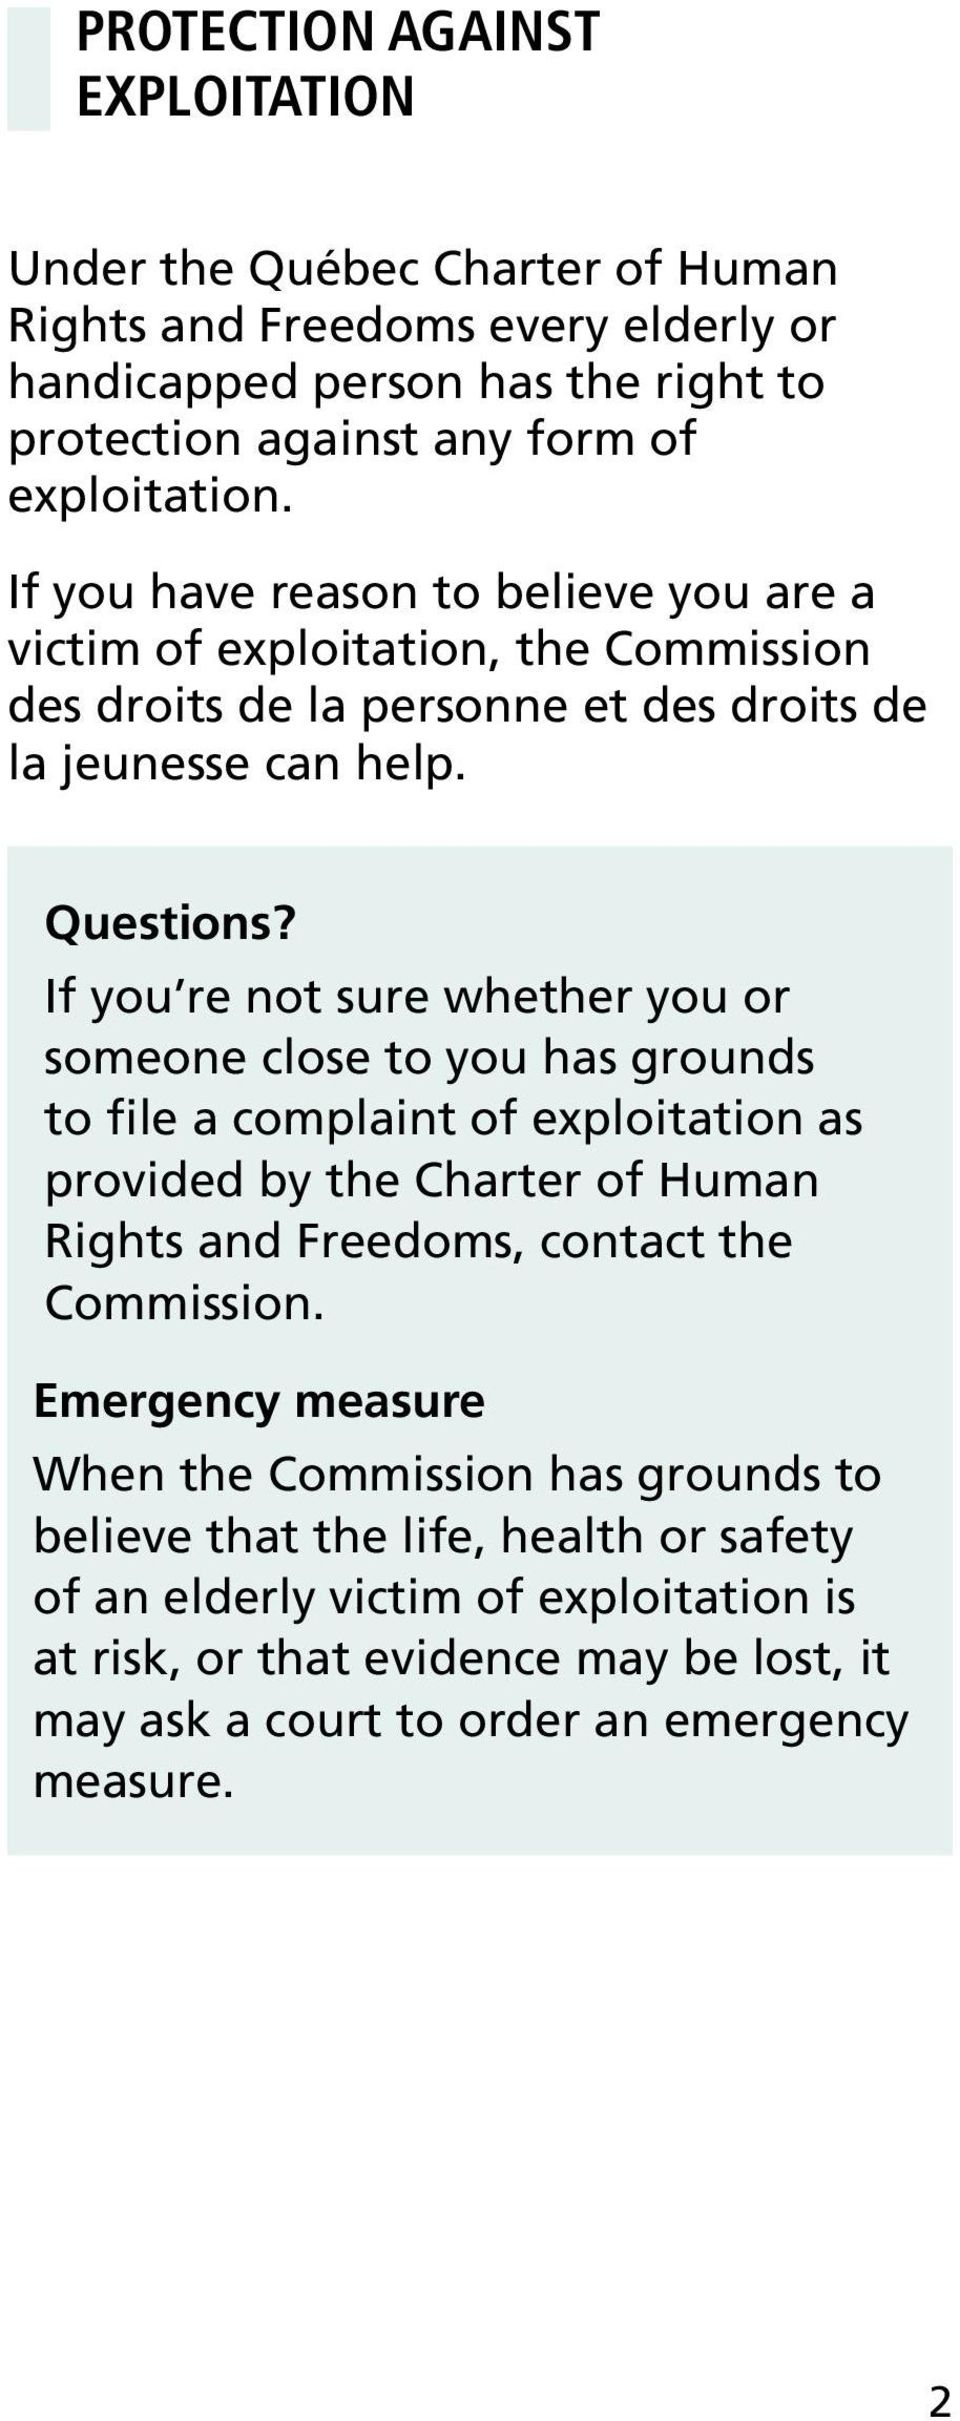 If you re not sure whether you or someone close to you has grounds to file a complaint of exploitation as provided by the Charter of Human Rights and Freedoms, contact the Commission.